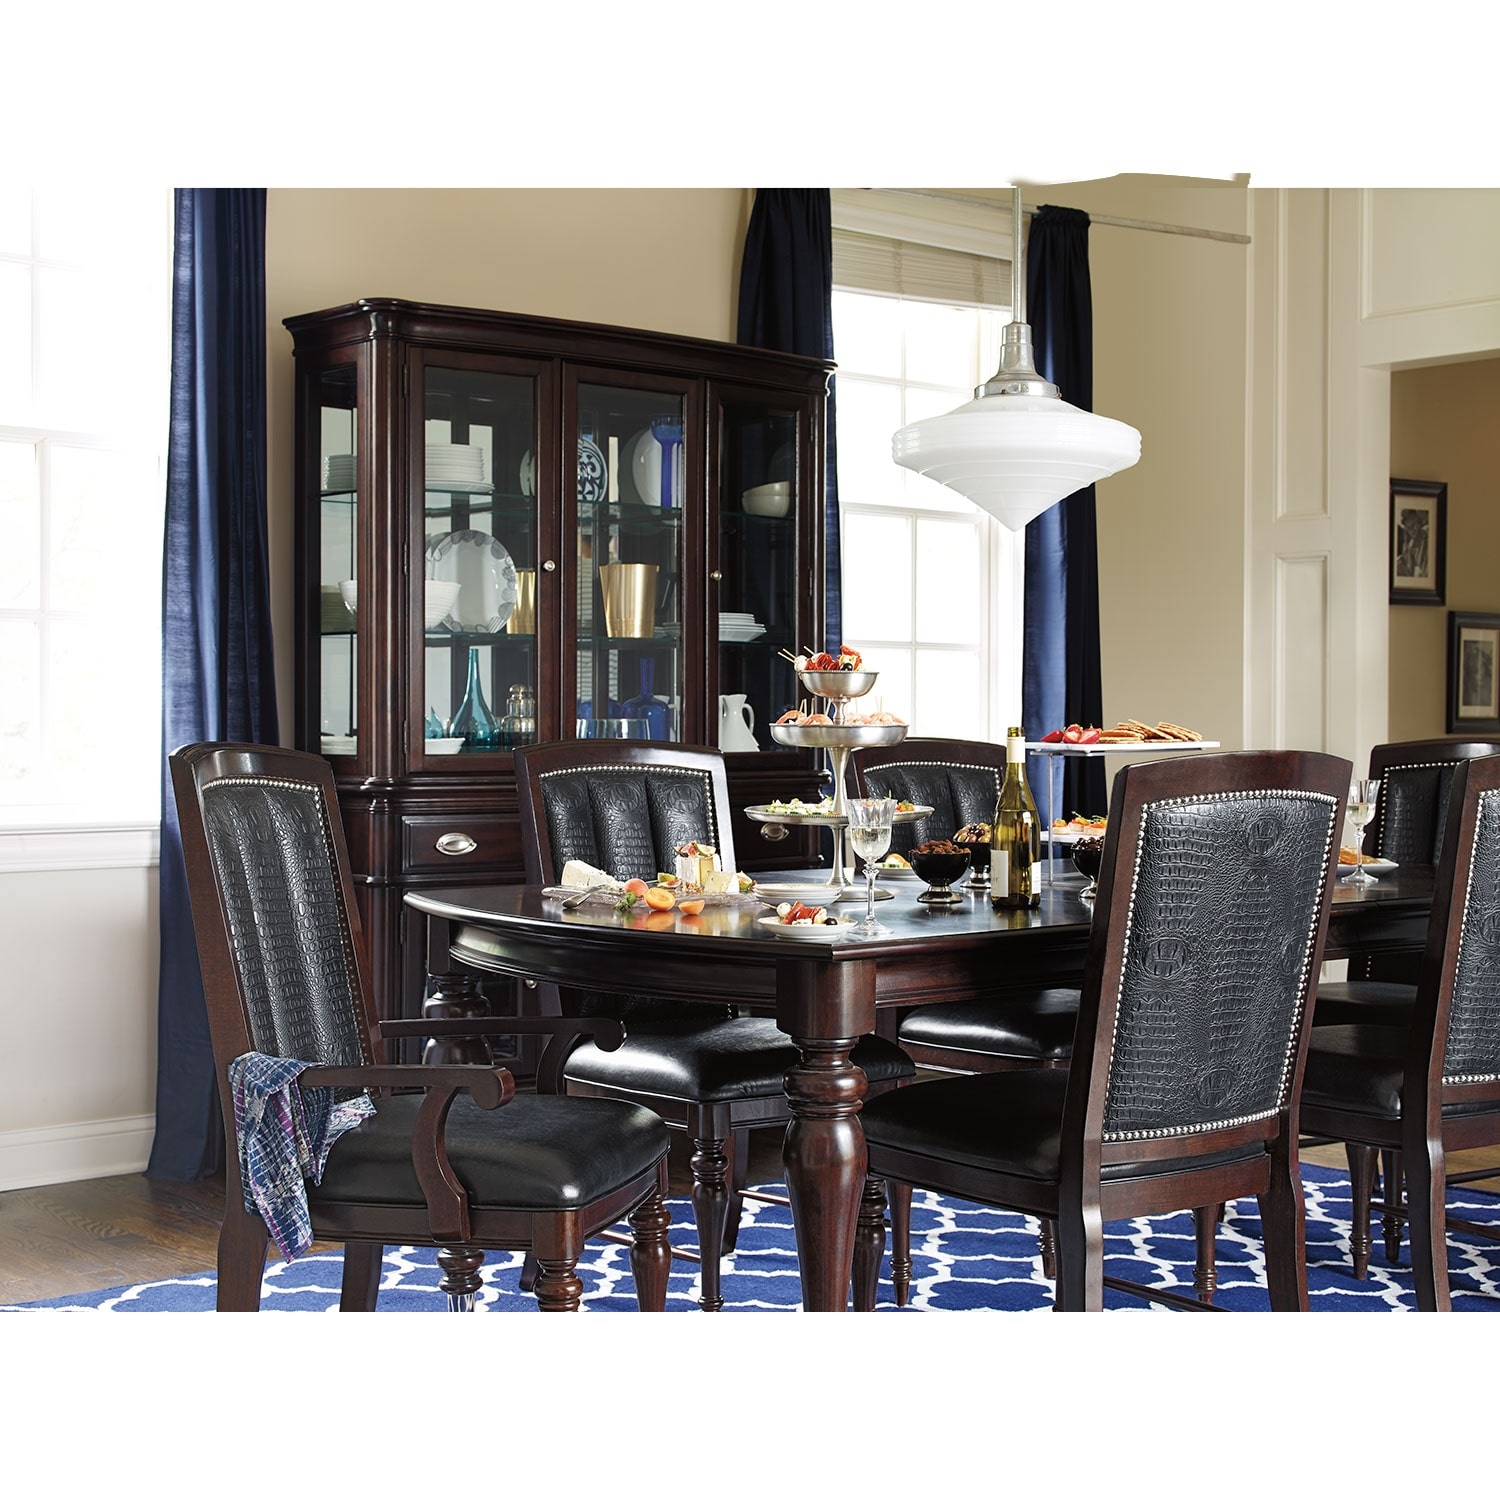 Dining Room Furniture   Esquire Table And 6 Chairs   Cherry. Hover/Touch To  Zoom. Click To Change Image.